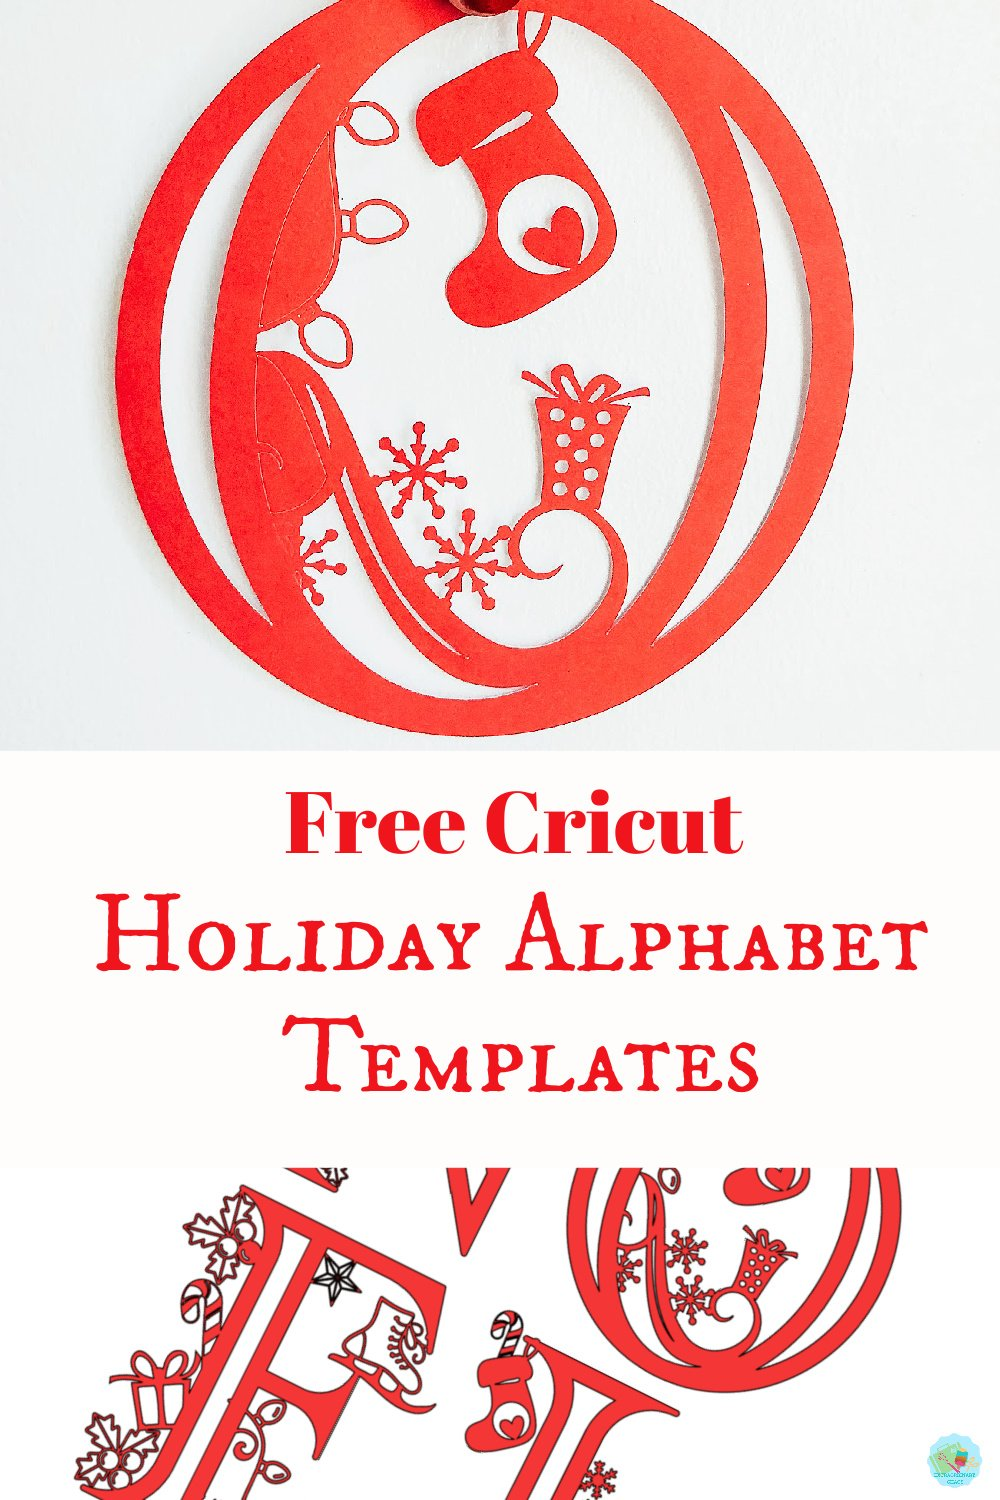 Free Cricut Holiday Template for Christmas craft projects on paper and vinyl to make gifts of craft projects to sell -3